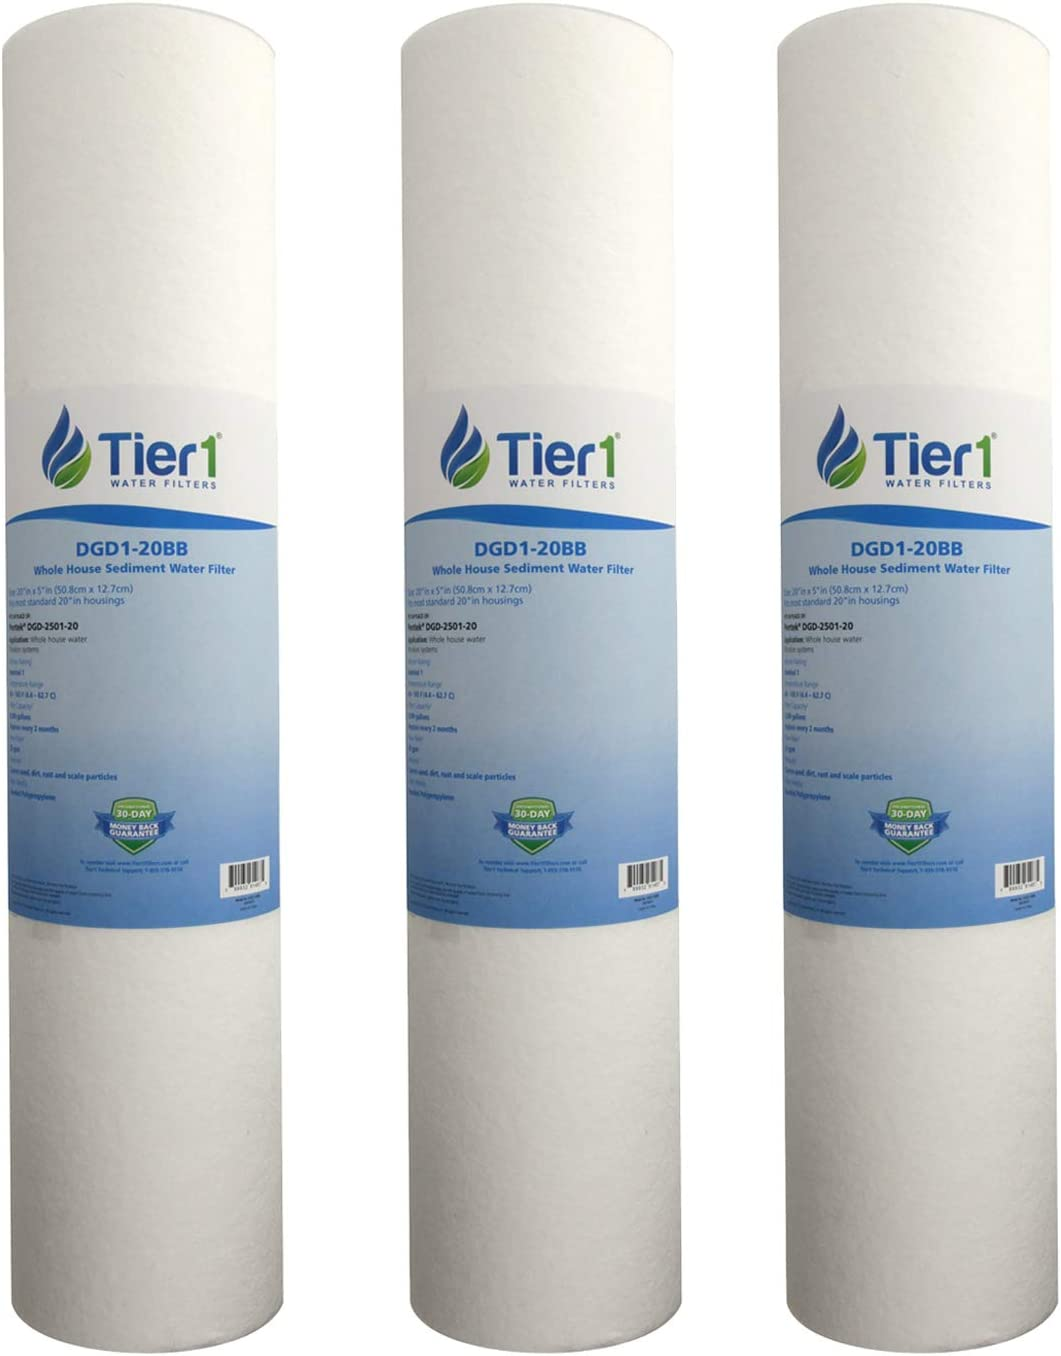 Tier1 DGD-2501-20 1 Micron 20 x 4.5 Spun Wound Polypropylene Sediment Pentek Comparable Replacement Water Filter 3-Pack